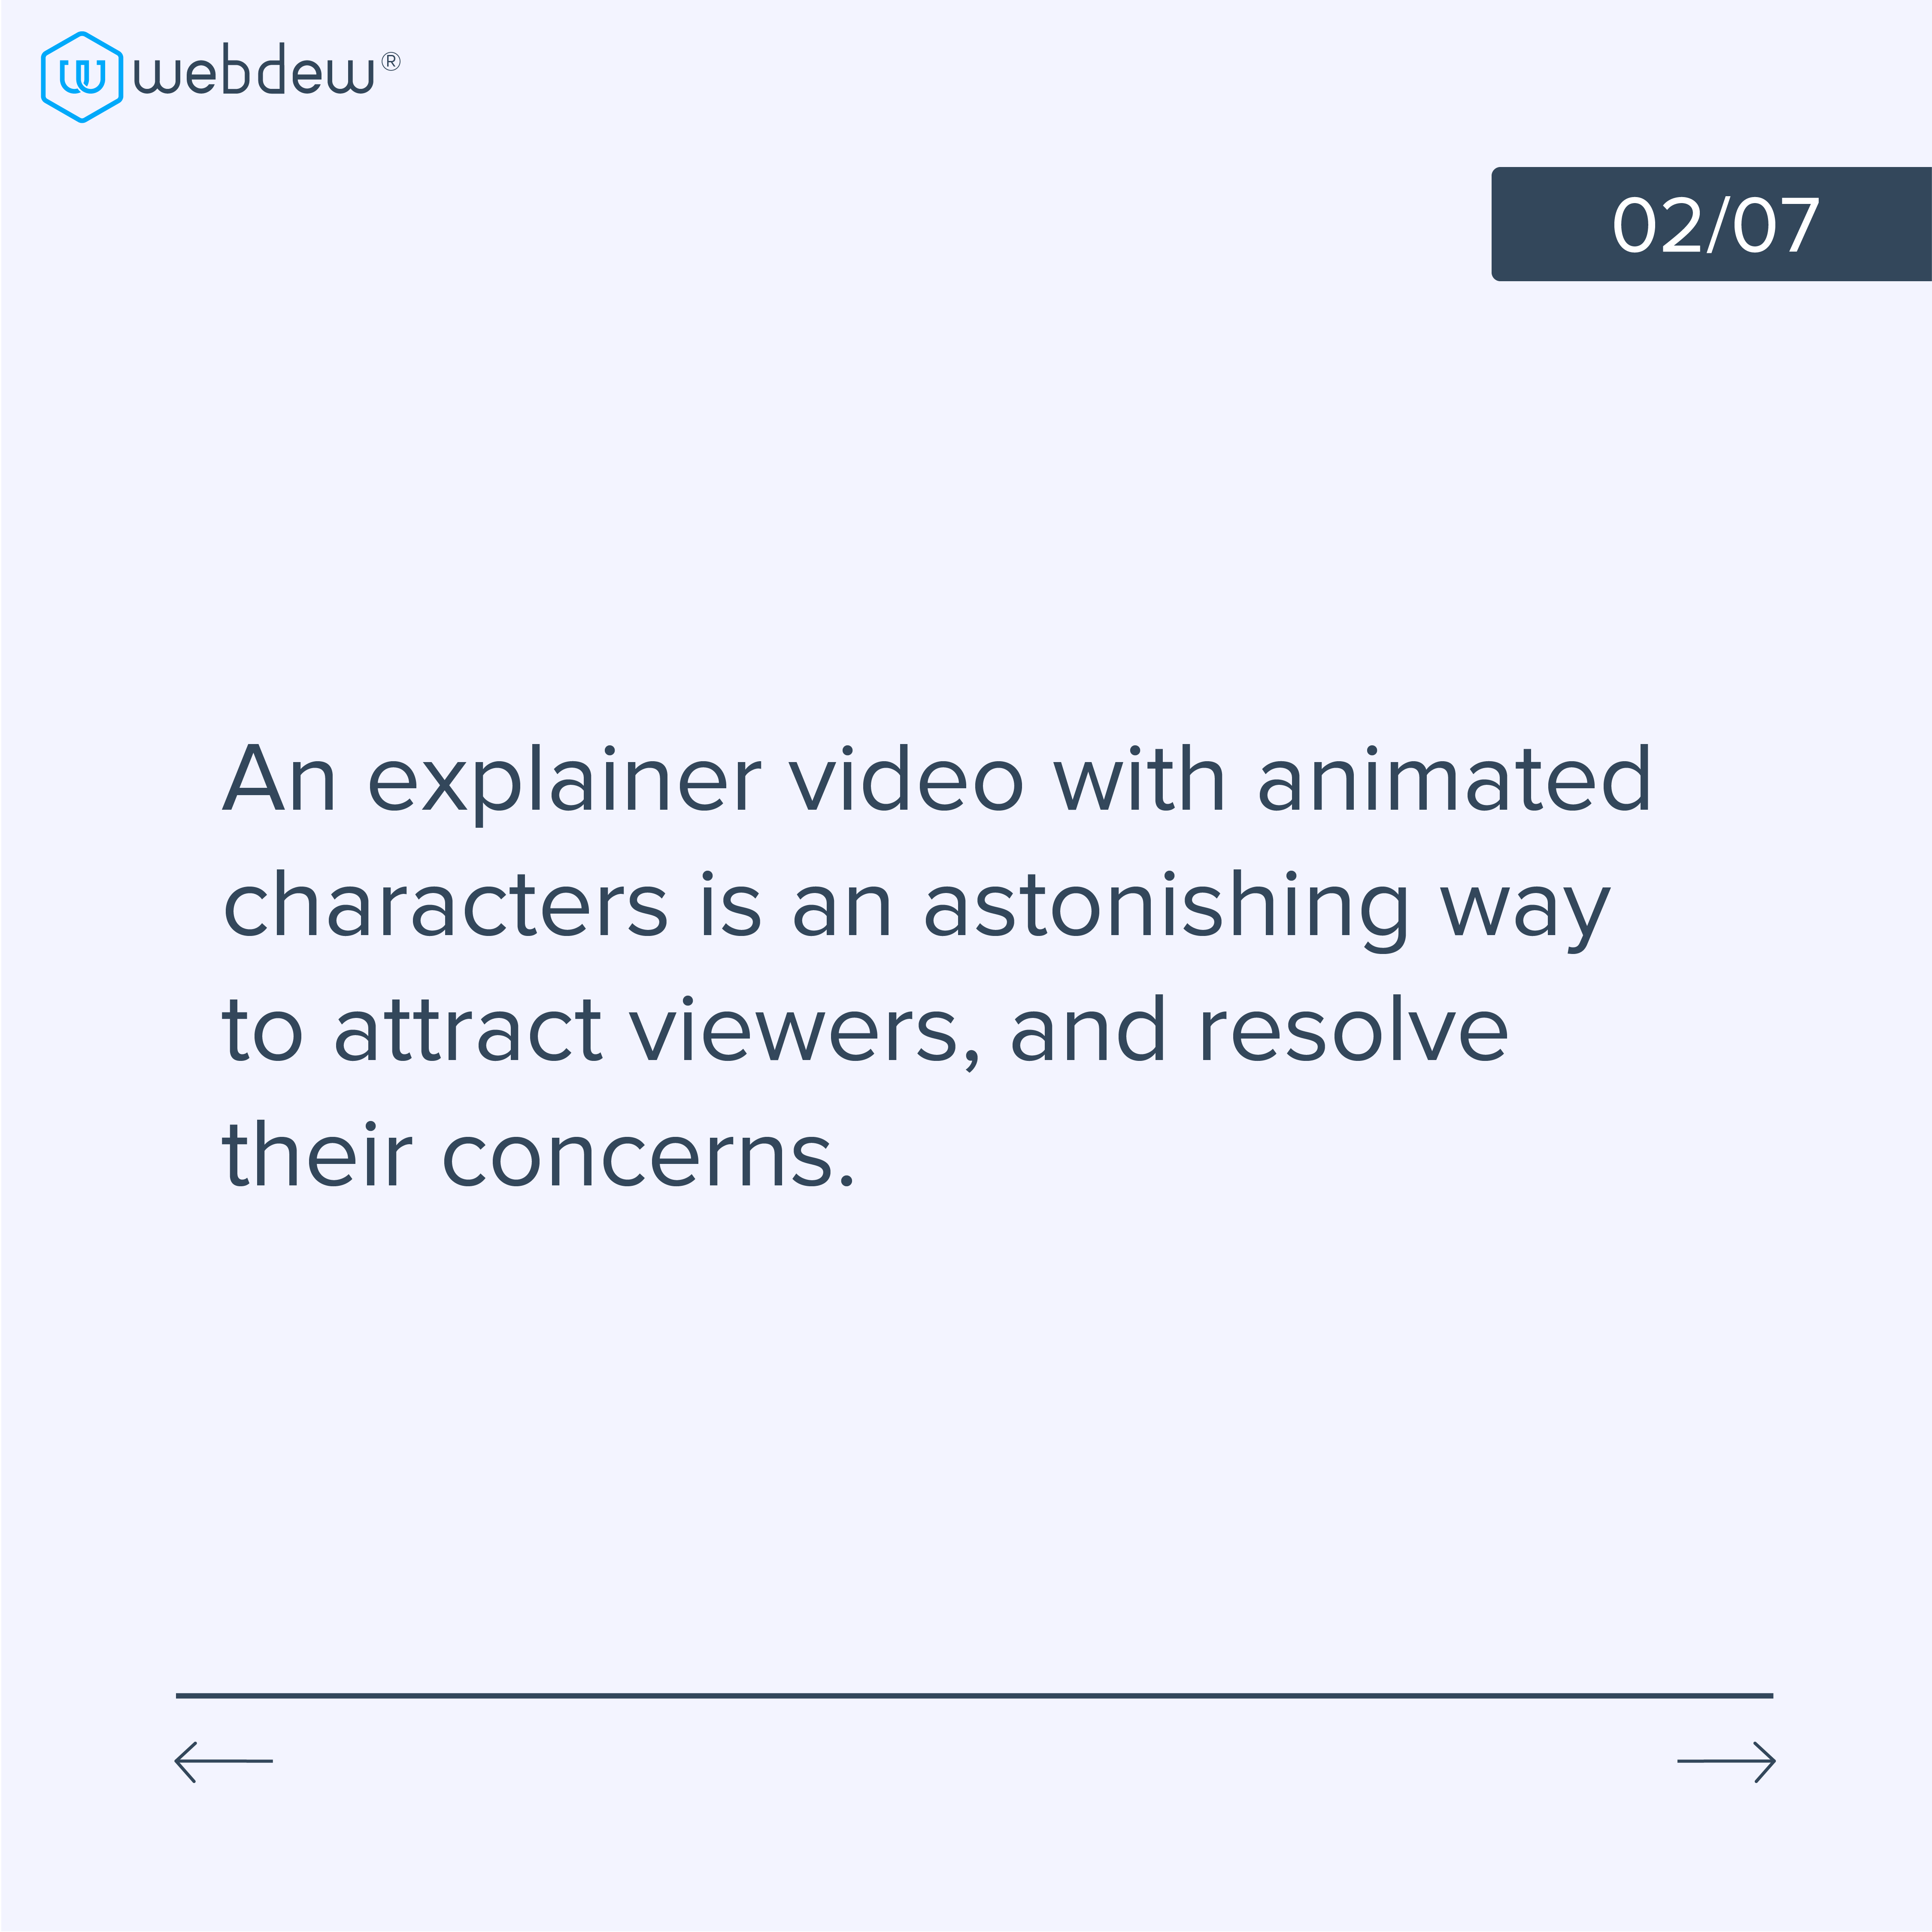 animated-characters-in-an-explainer-video-attract-videos